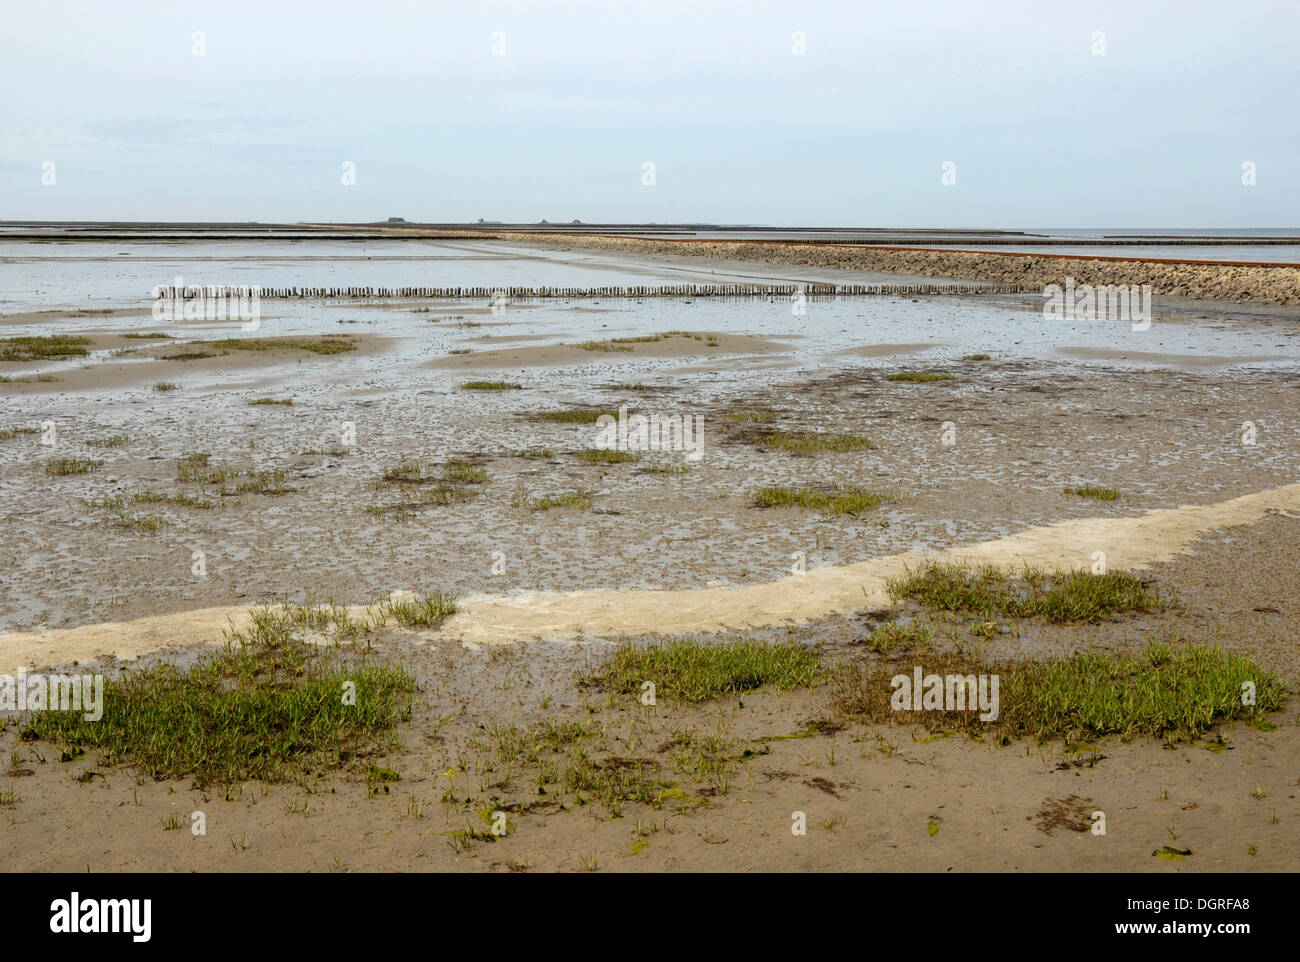 View over the mud flats at low tide, breakwaters and trolley causeway to Nordstrandischmoor island, Nationalpark - Stock Image